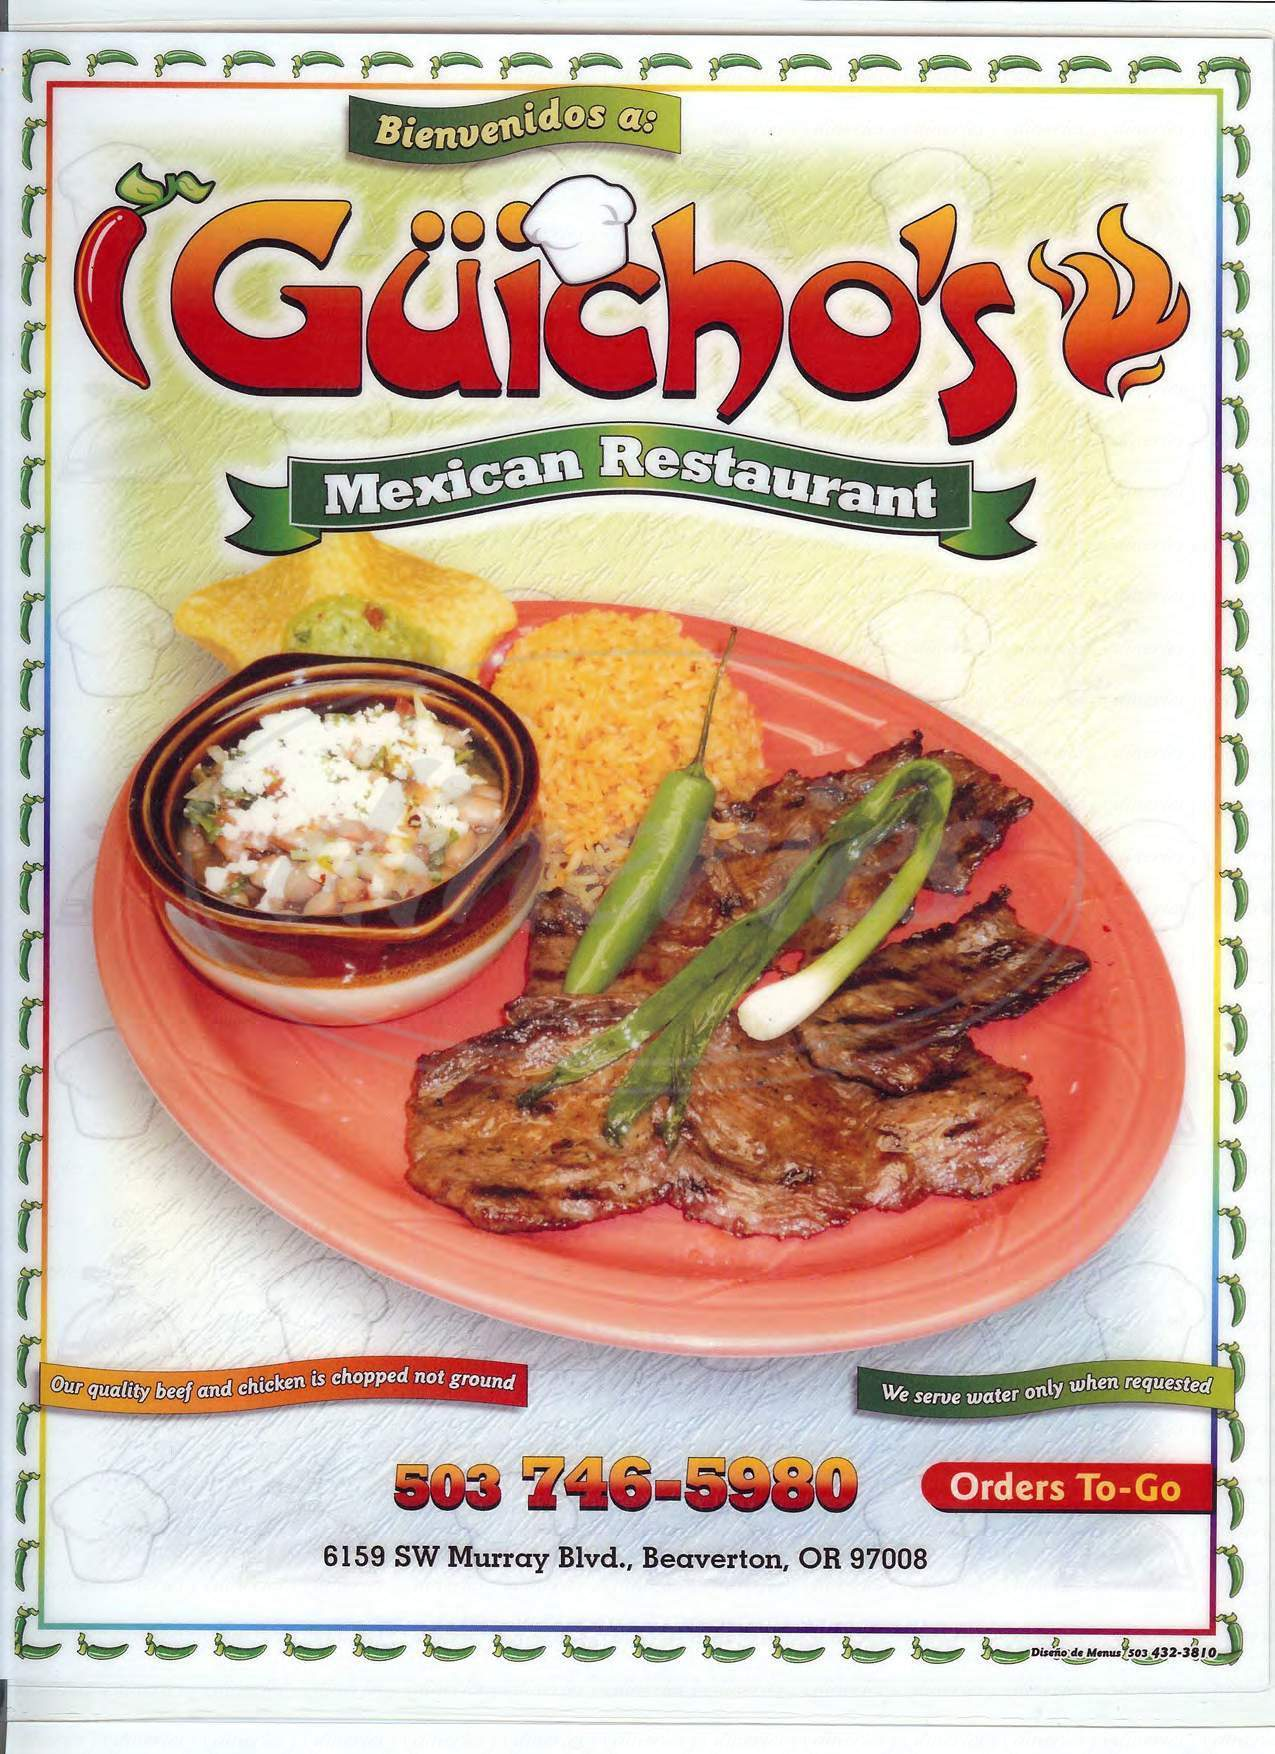 menu for Guicho's Mexican Restaurant